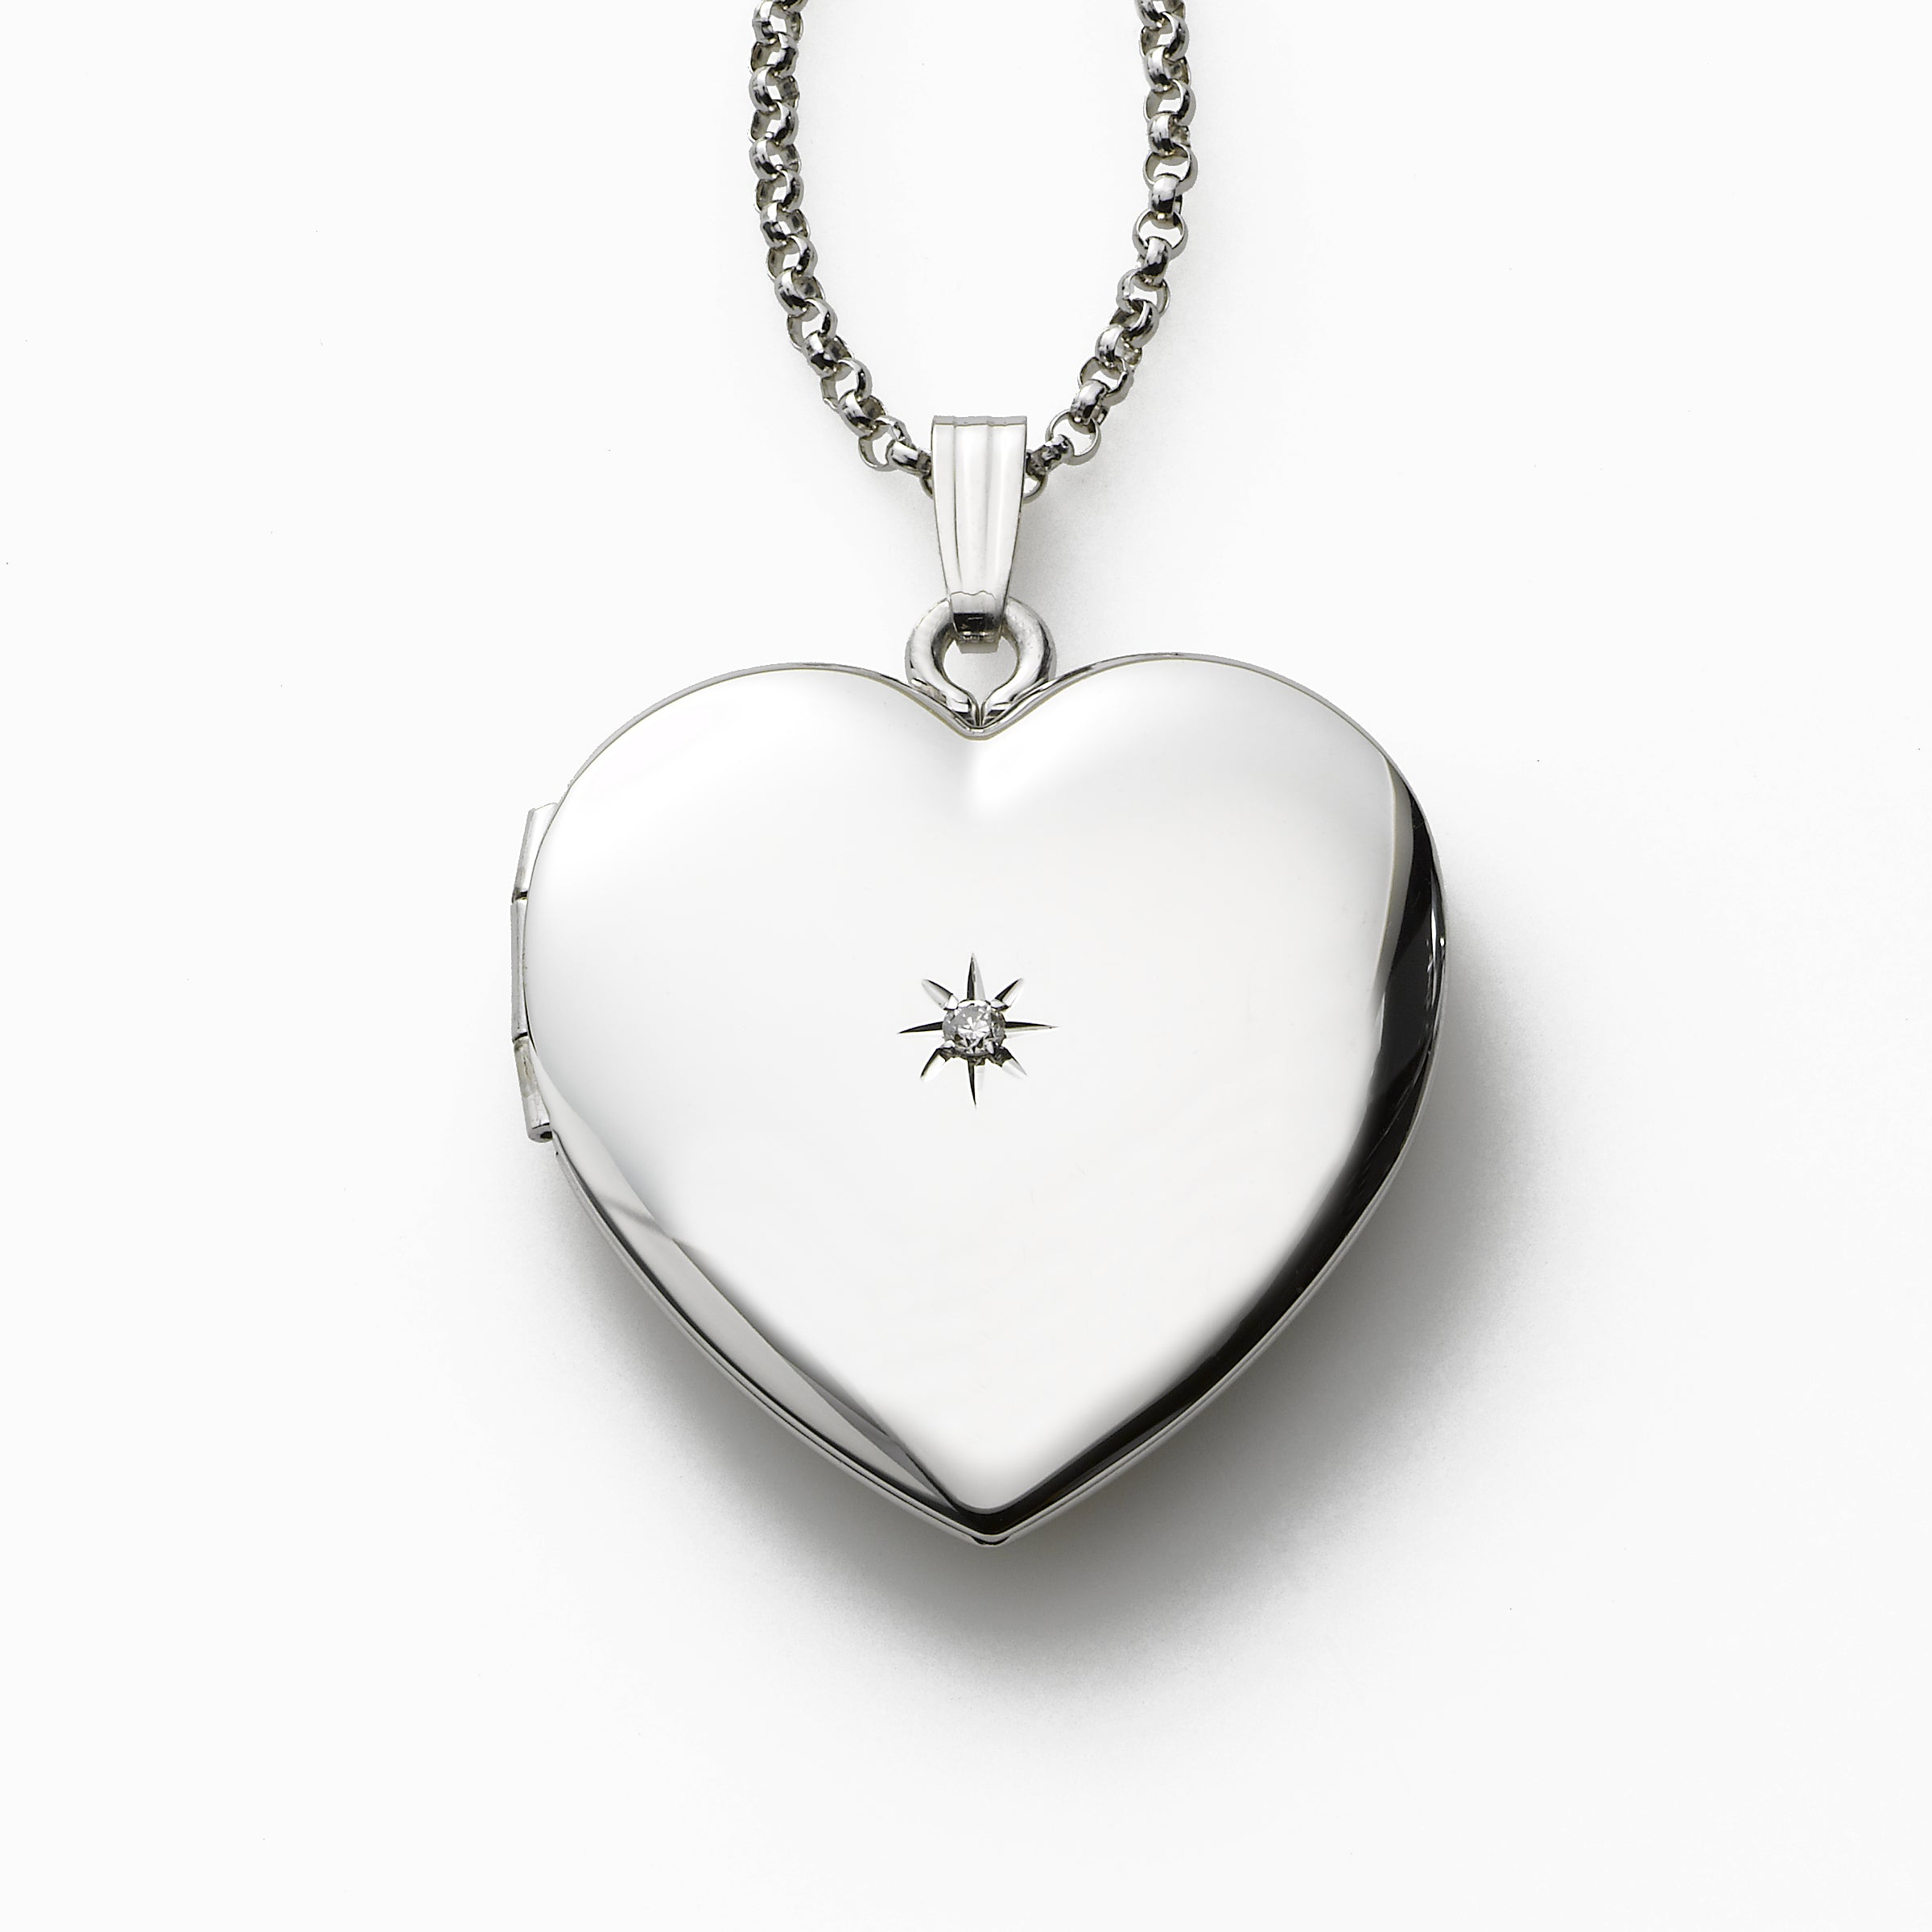 0ecf4120e Fortunoff Fine Jewelry. Home; Heart Shaped Locket Necklace with Diamond  Accent ...